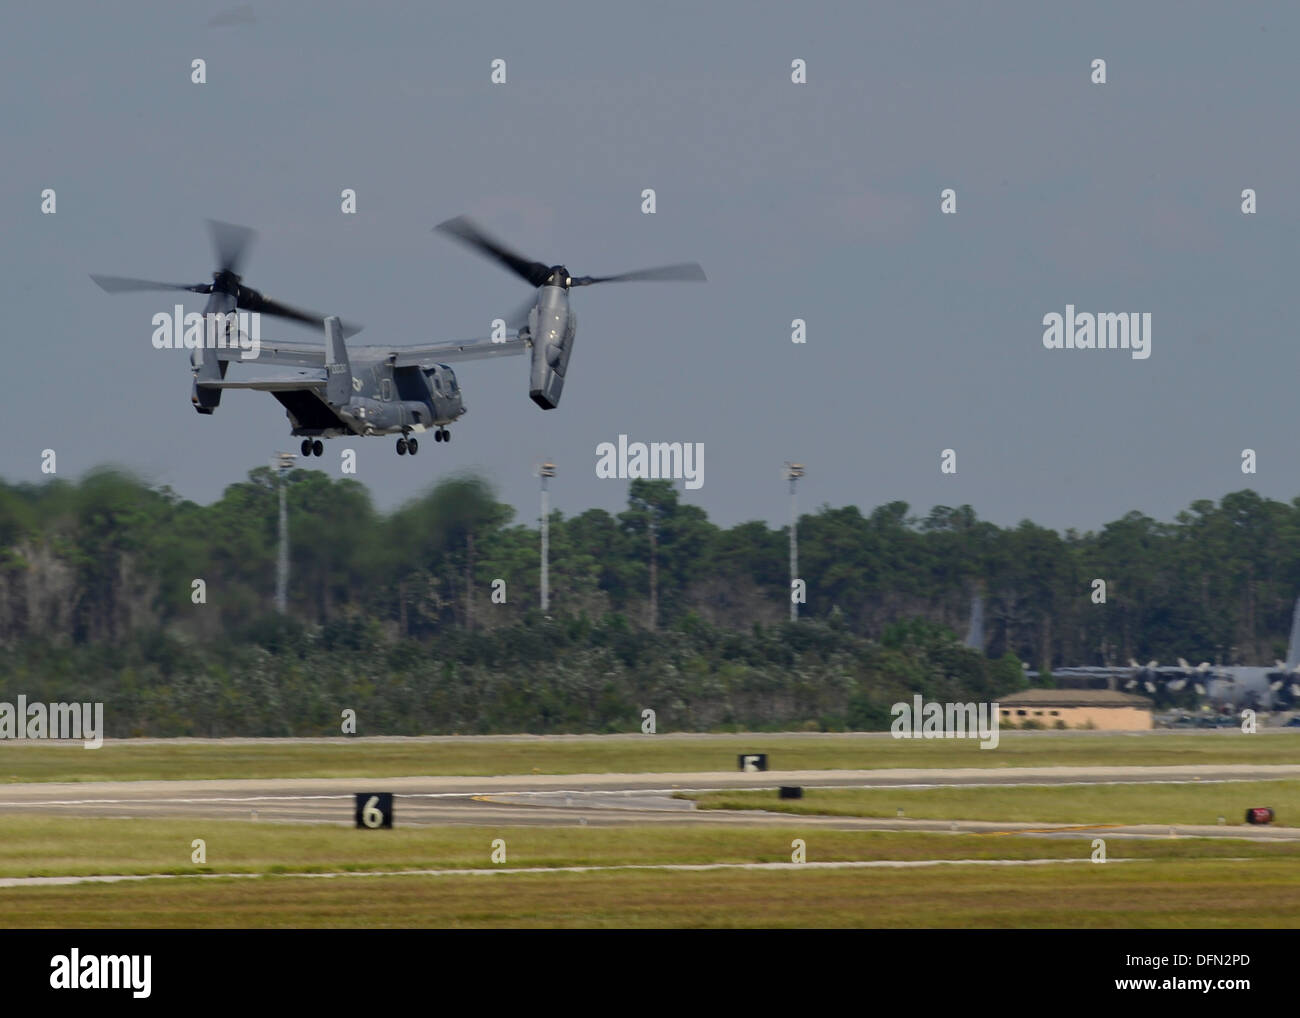 A U.S. Air Force CV-22 Osprey departs Hurlbut Field, Fla. Oct. 3, 2013. The aircraft is leaving as part of the preparation for the possible arrival of Tropical Storm Karen. - Stock Image